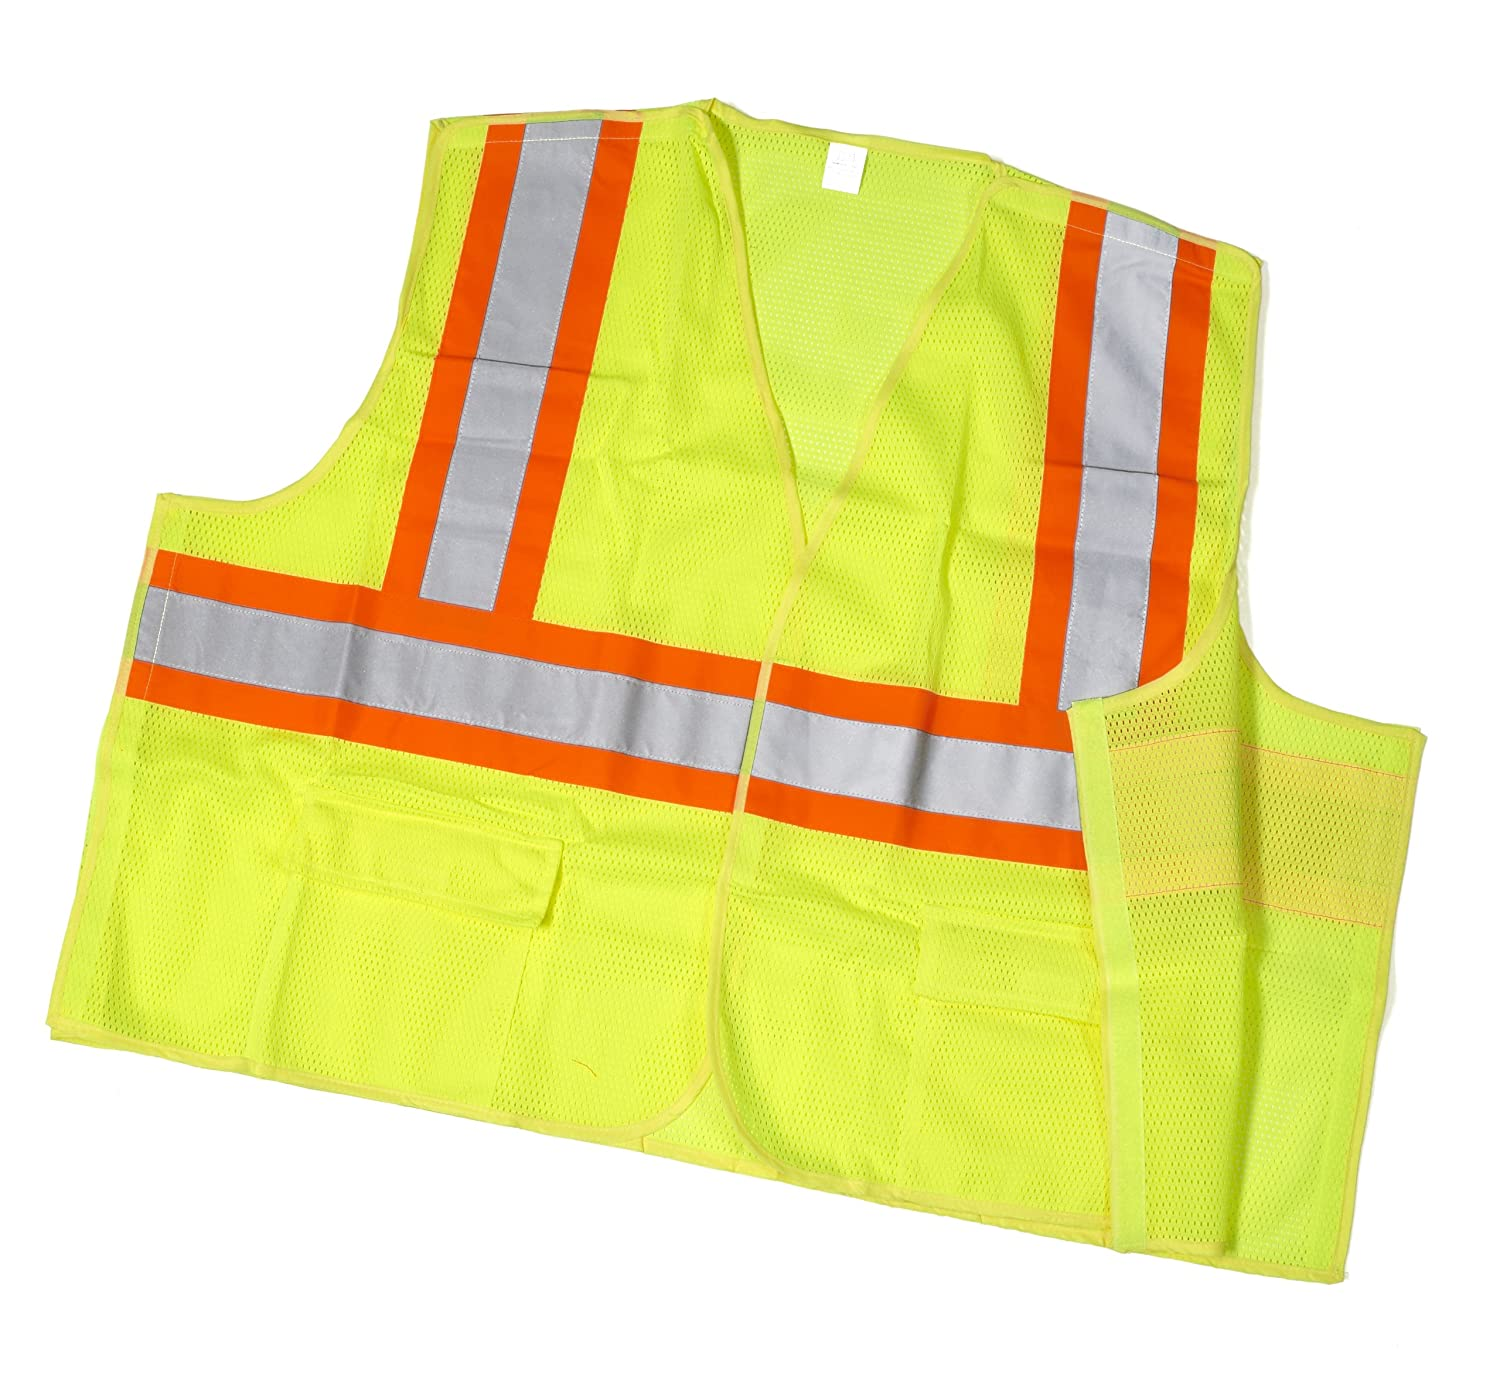 3X-Large Mutual 16386 High Visibility Polyester ANSI Class 2 Mesh Tearaway Safety Vest with Pockets and 4 Orange//Silver//Orange Reflective Tape 16386-0-6 Lime Mutual Industries Inc